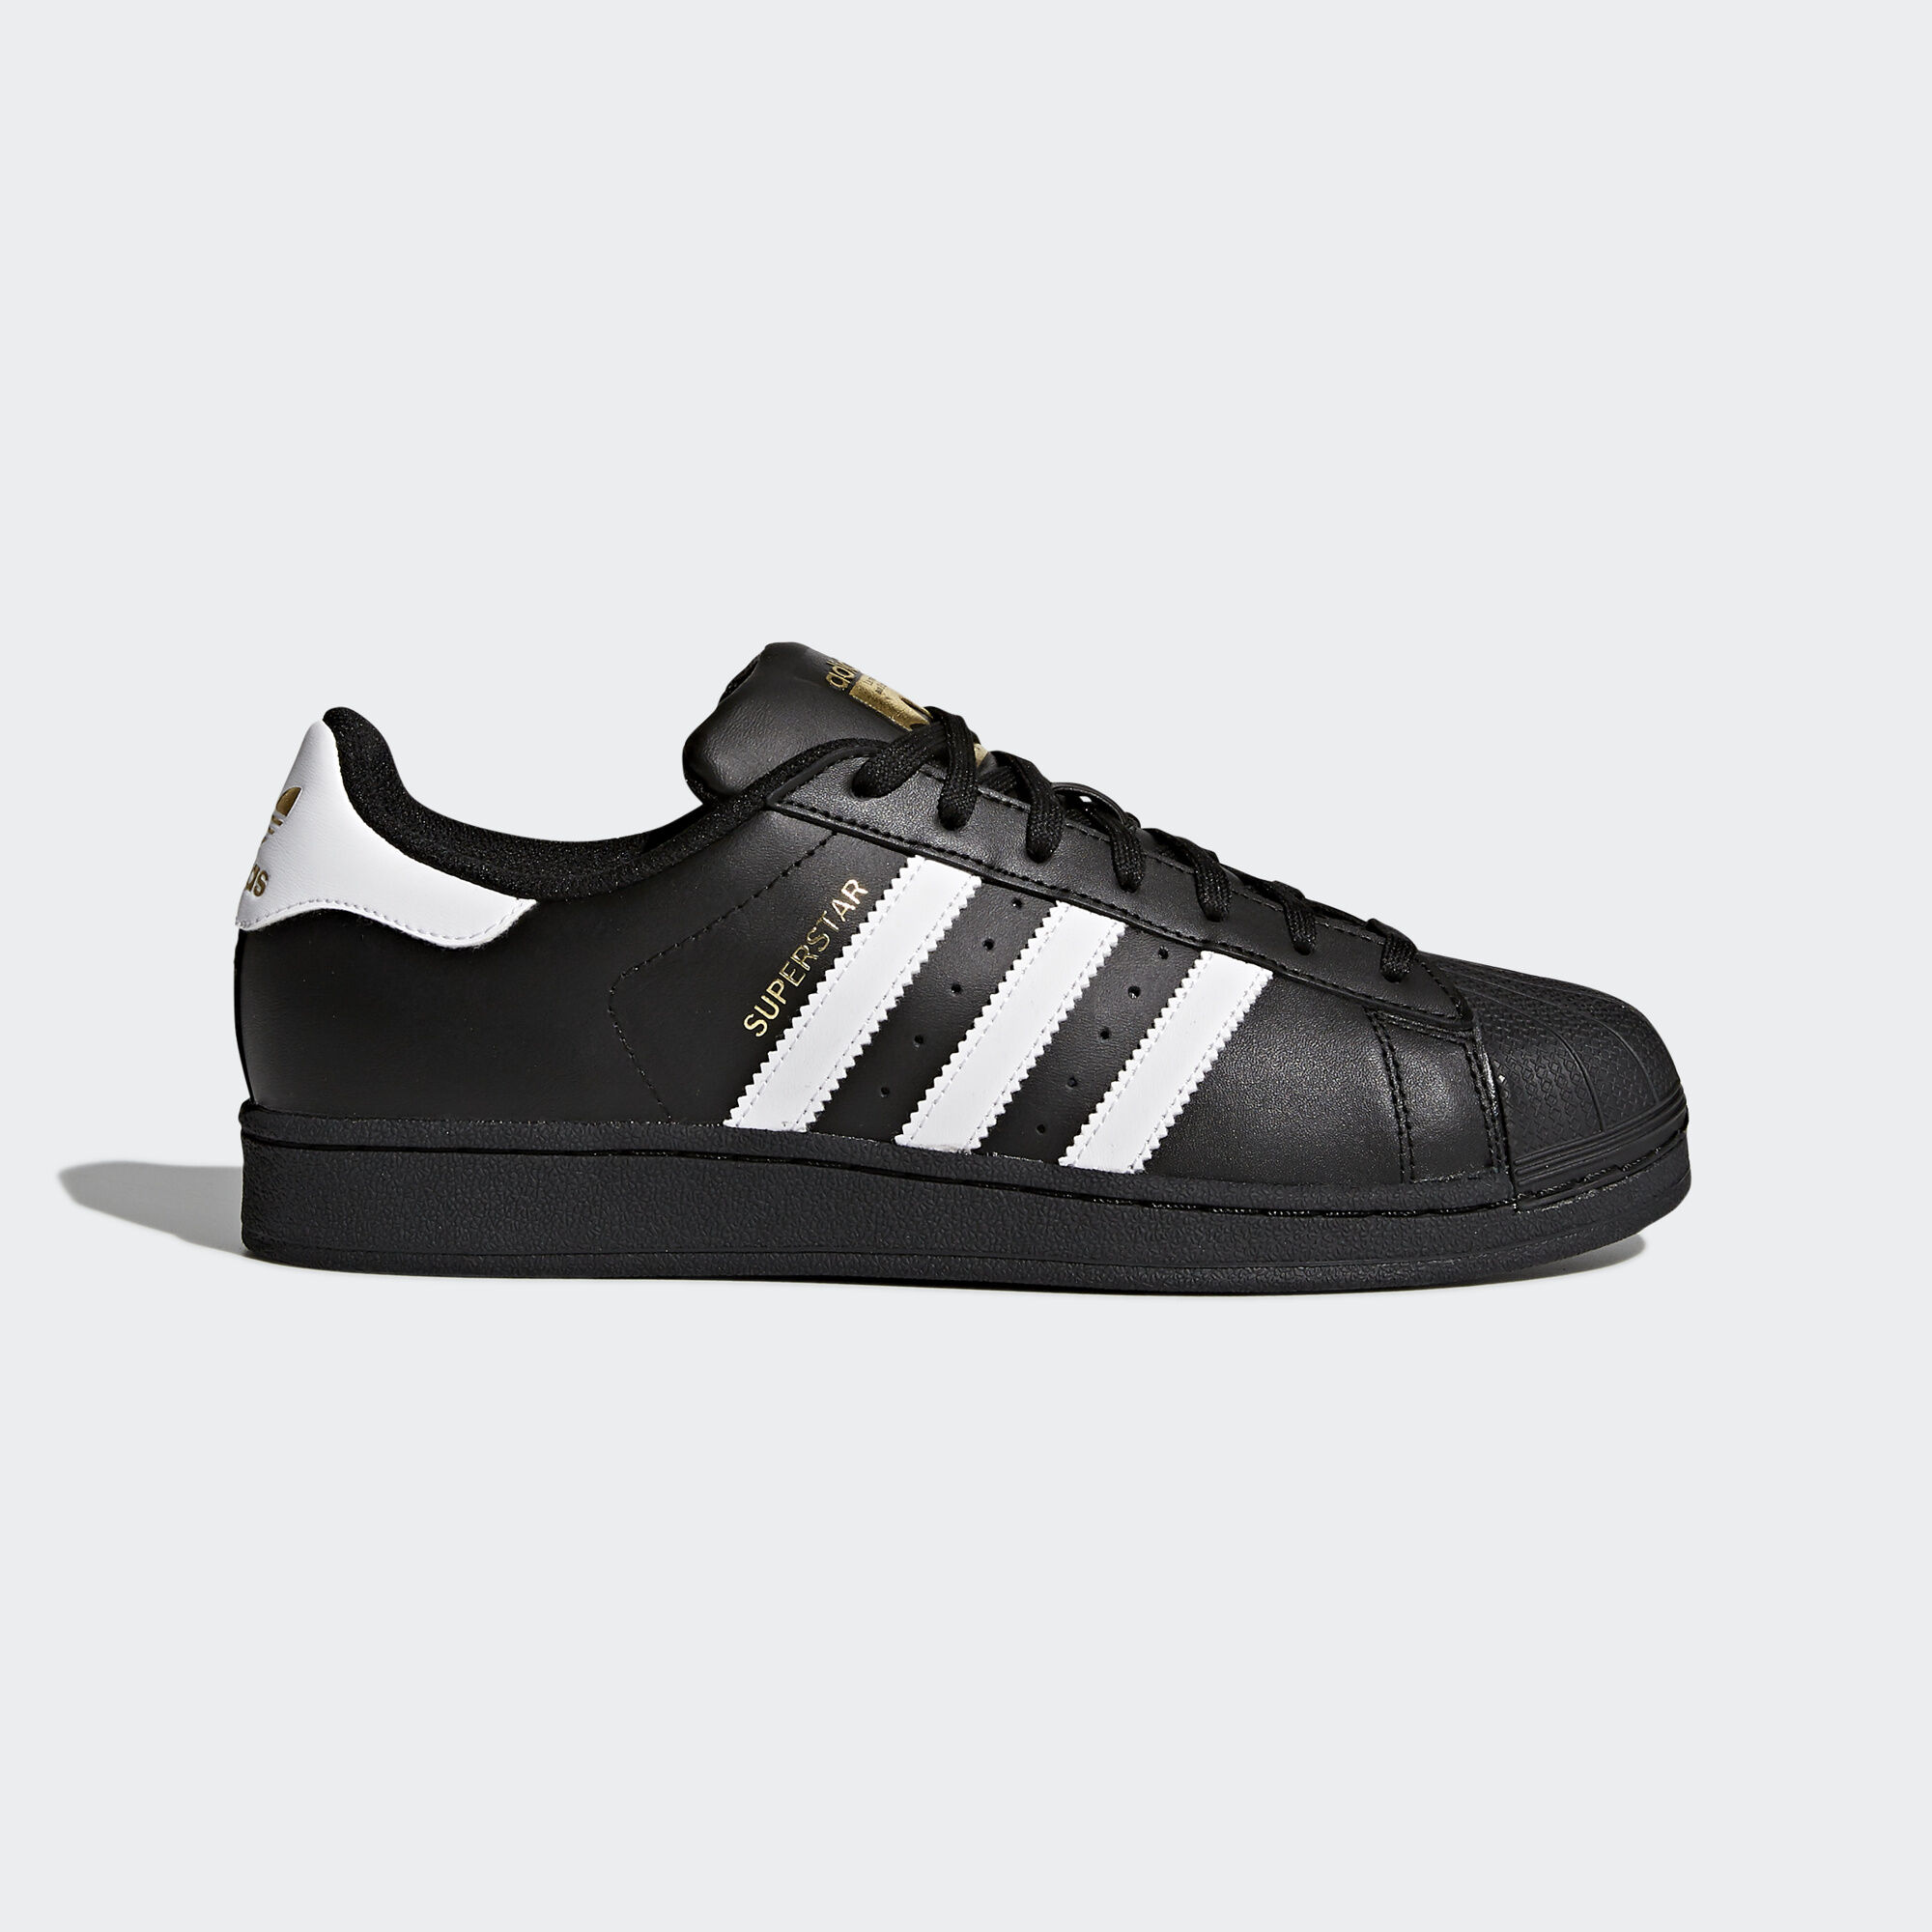 Adidas Superstar Black And White Price